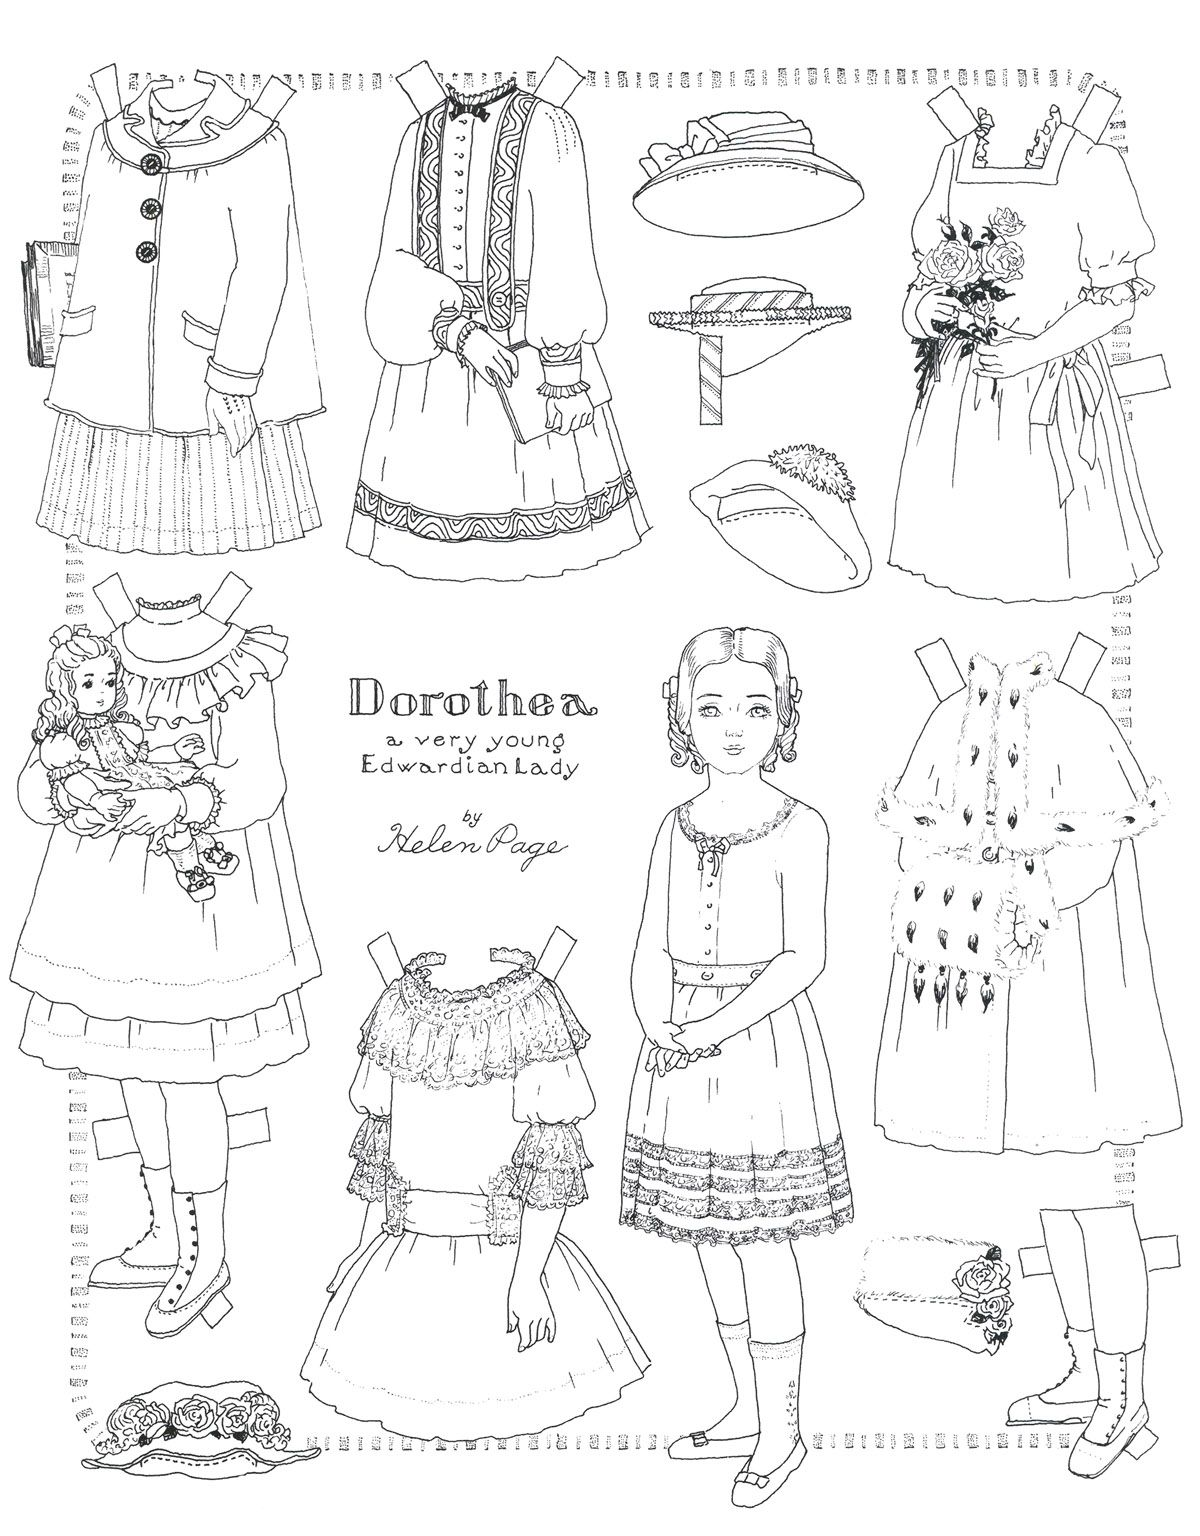 Marilee's Paperdoll Page II: Printable Children & Teenager